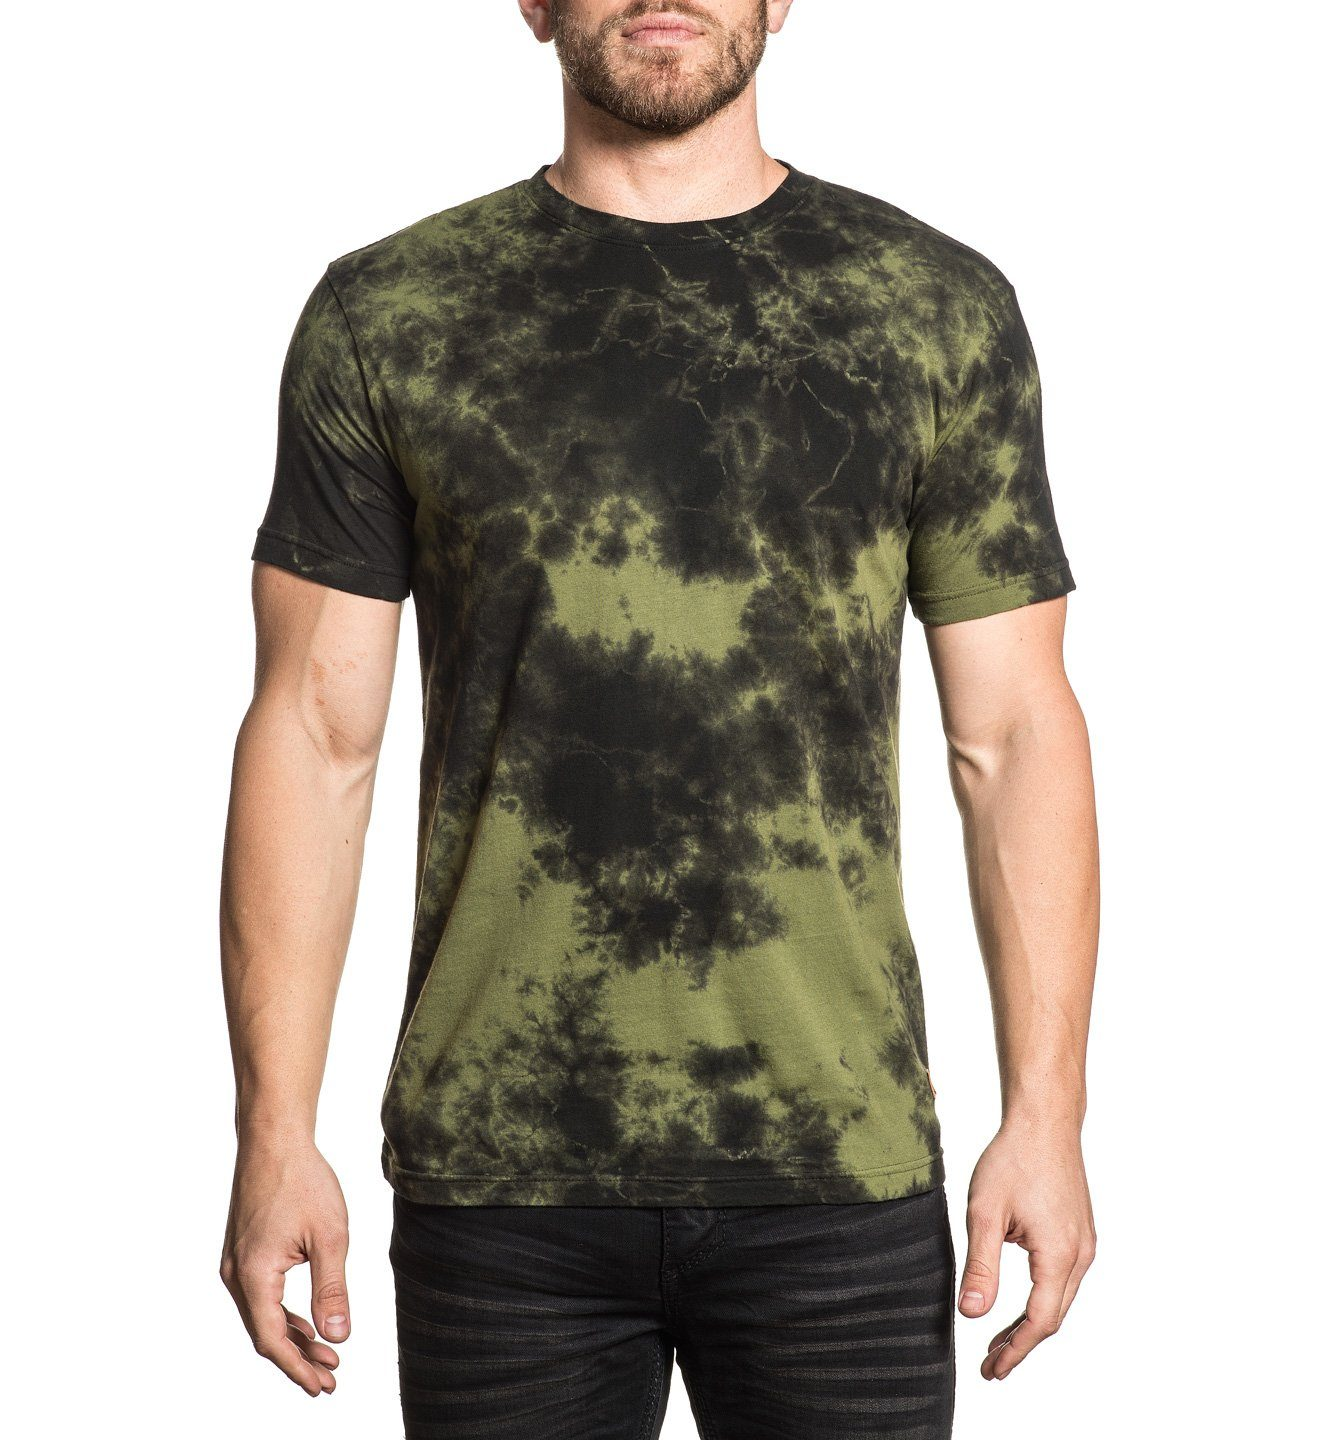 Mens Short Sleeve Tees - Standard Supply M-098